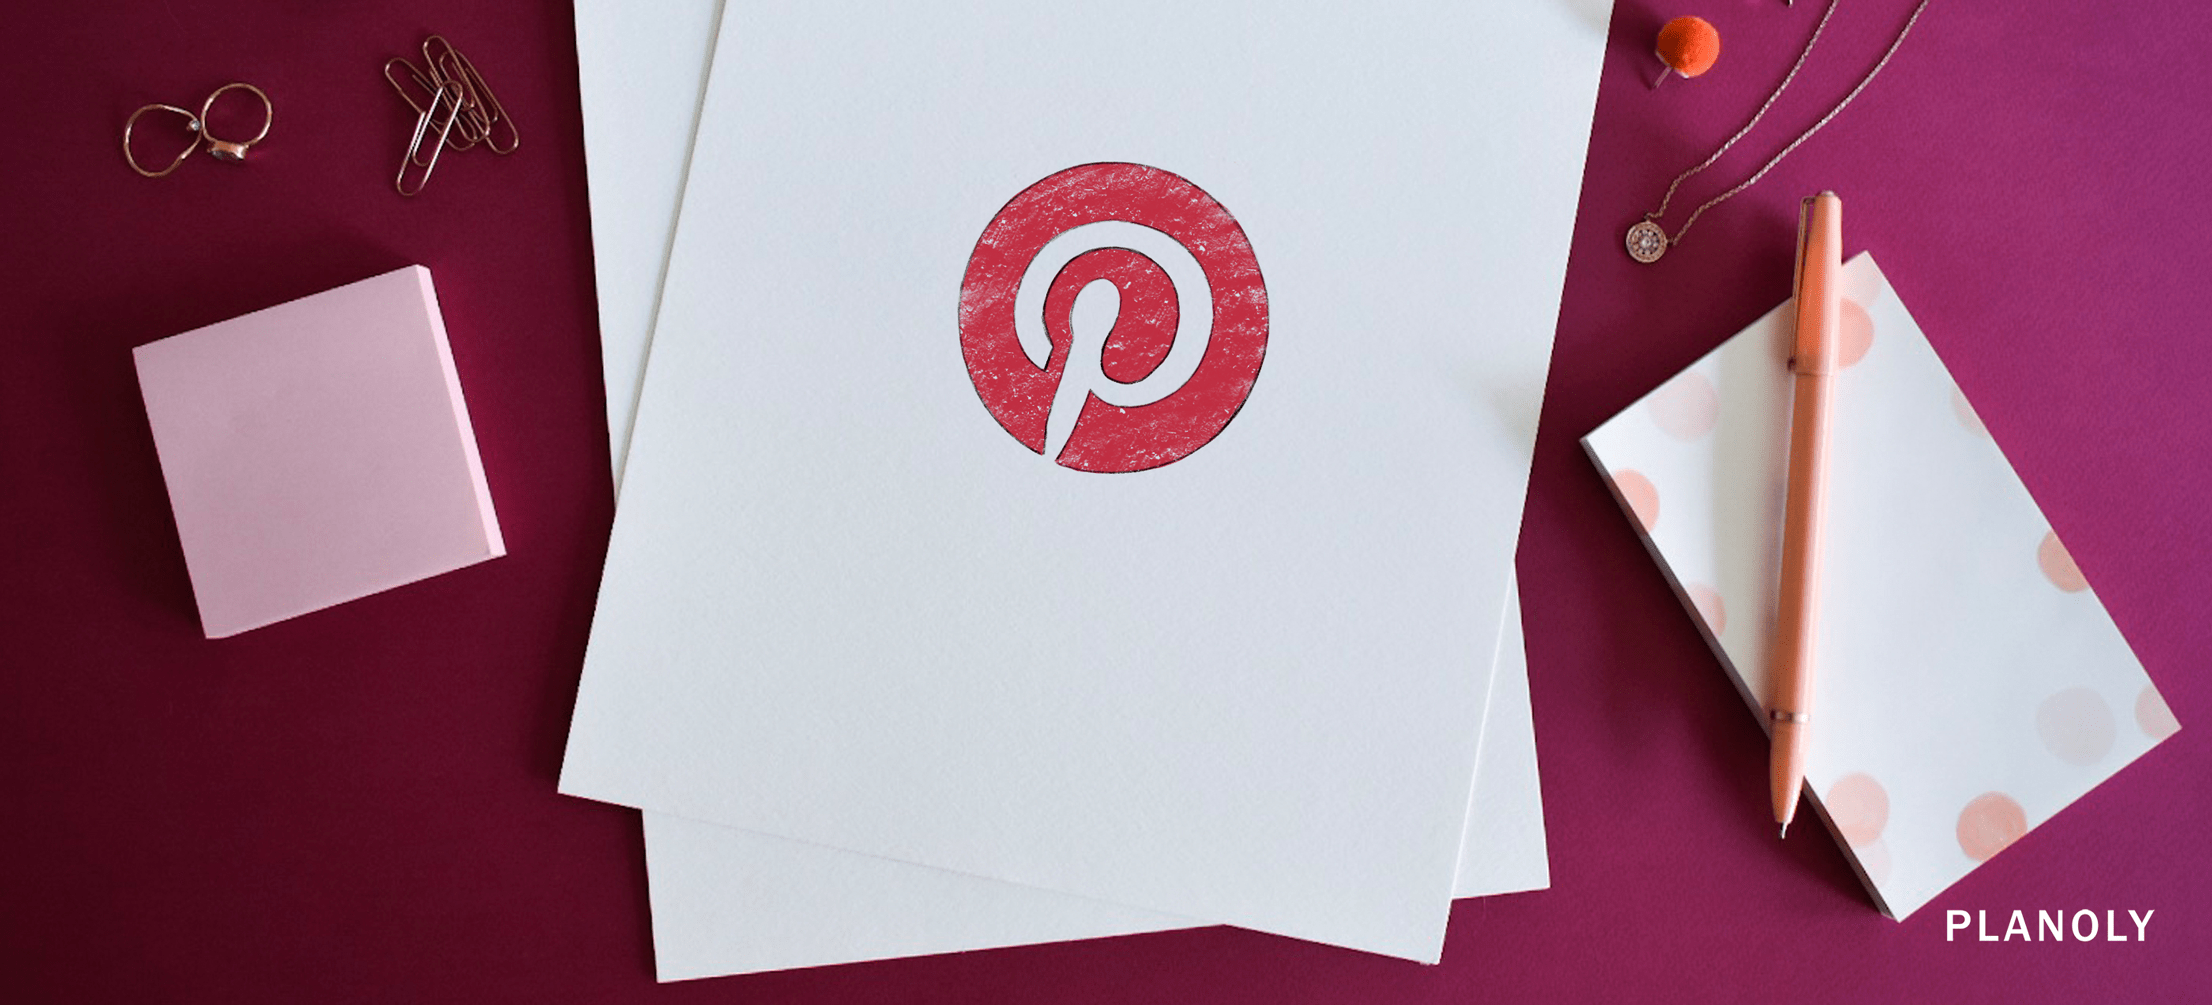 The Best Pinterest Strategy To Grow Your Blog and Instagram